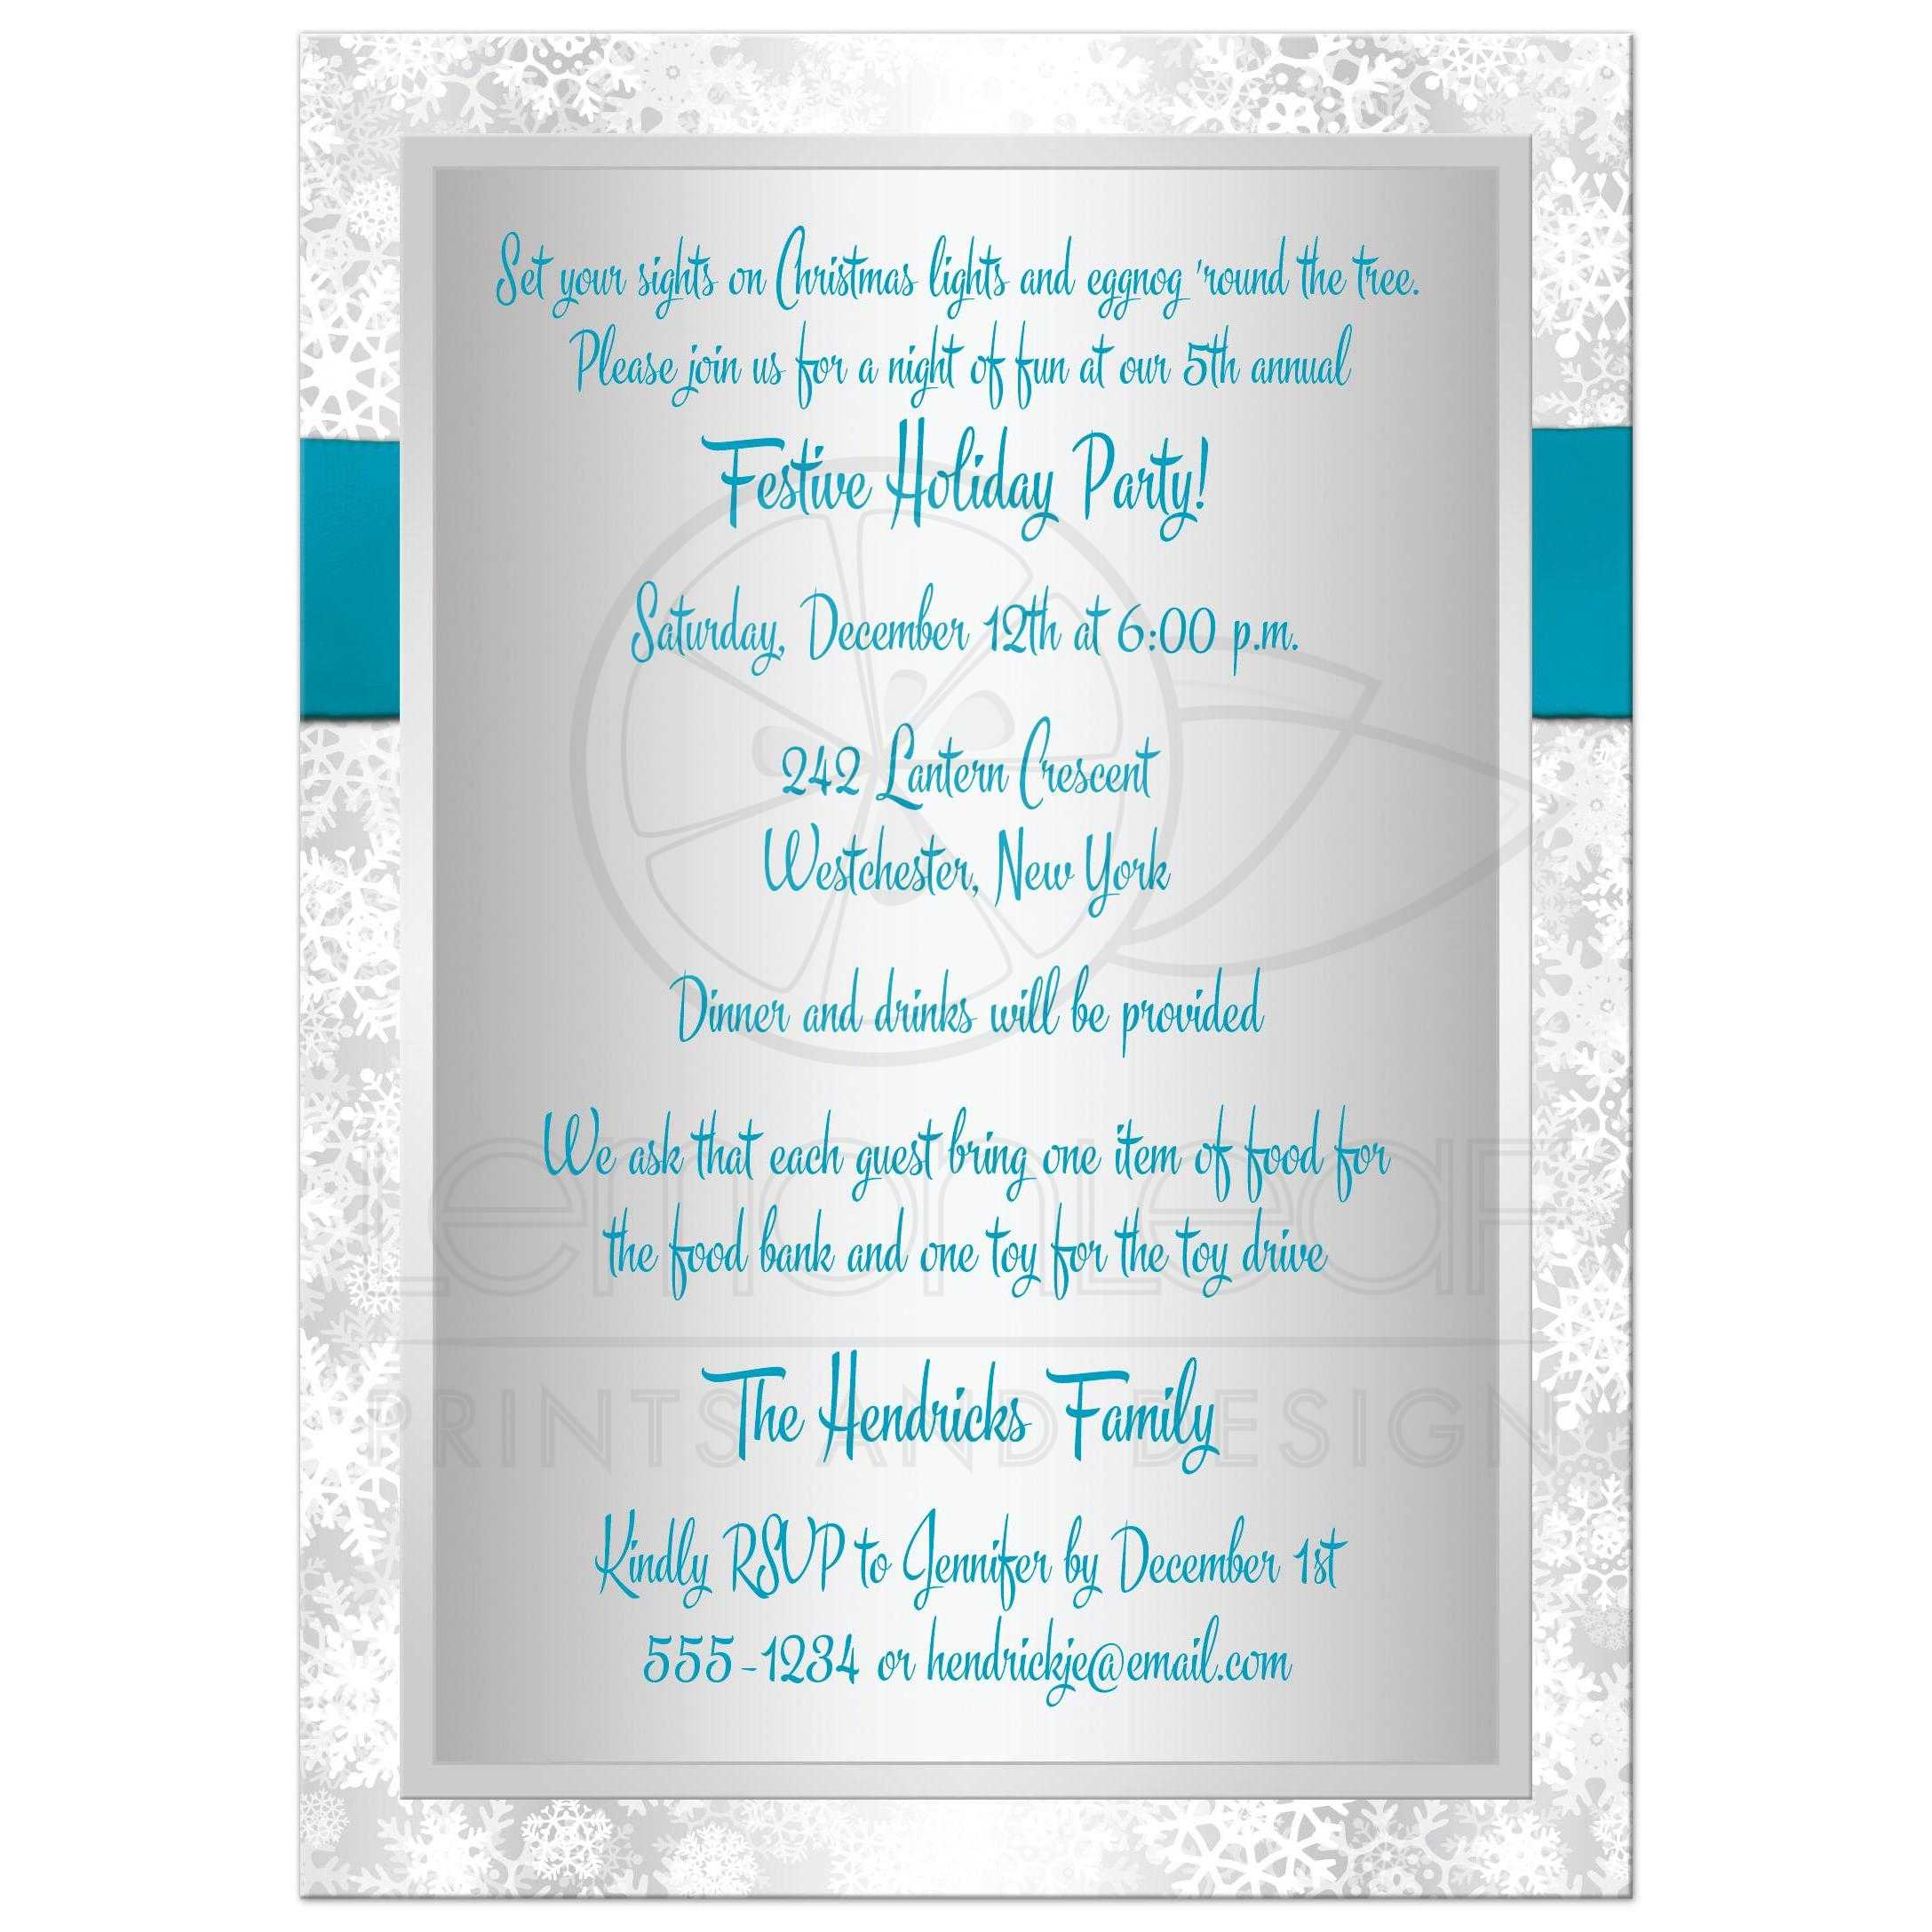 holiday party invitation turquoise gray white simulated great silver and white snowflakes winter holiday corporate fundraiser or christmas party invitation